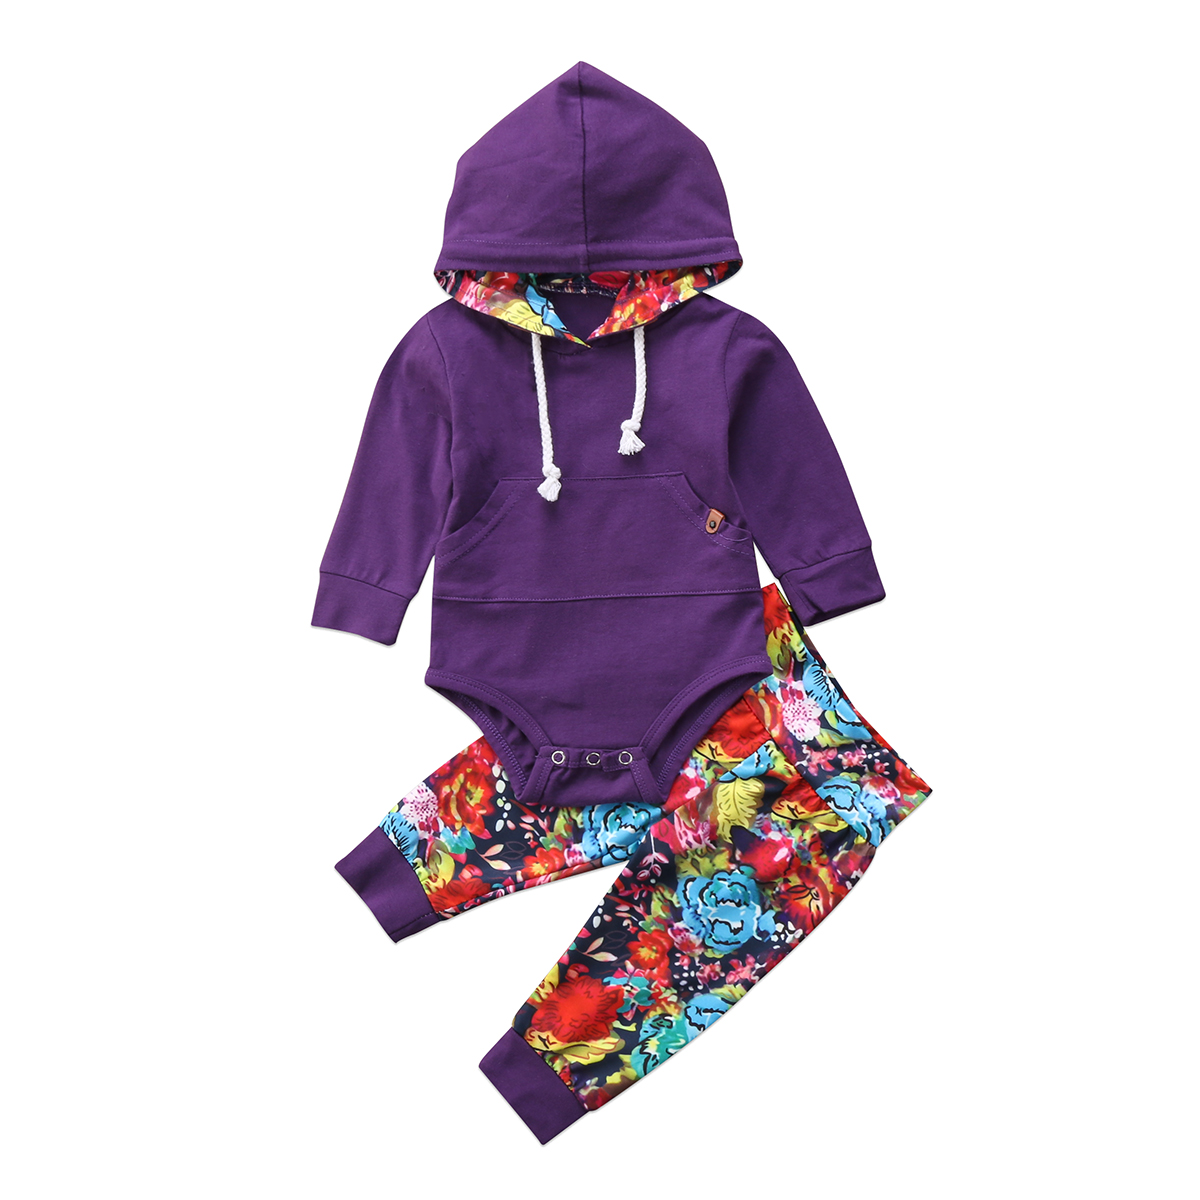 2018 Fashion Newborn Kids Toddler Baby Girl Floral Hoodie Top Pants Home Outfit Set Clothes 2PCS Set